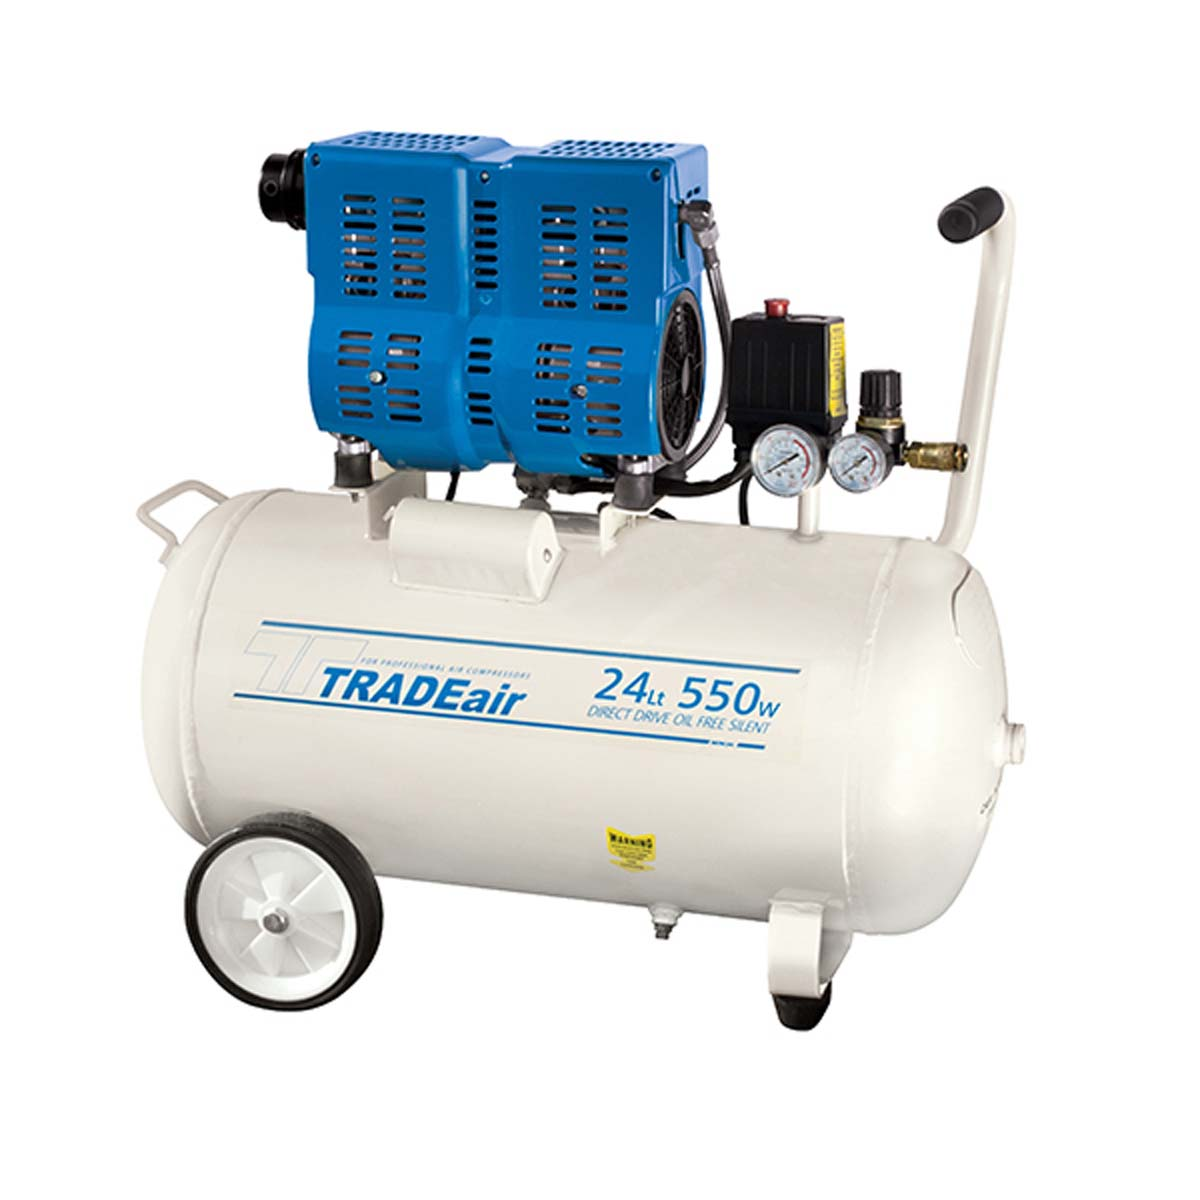 Direct Drive Silent Oil Free Compressors